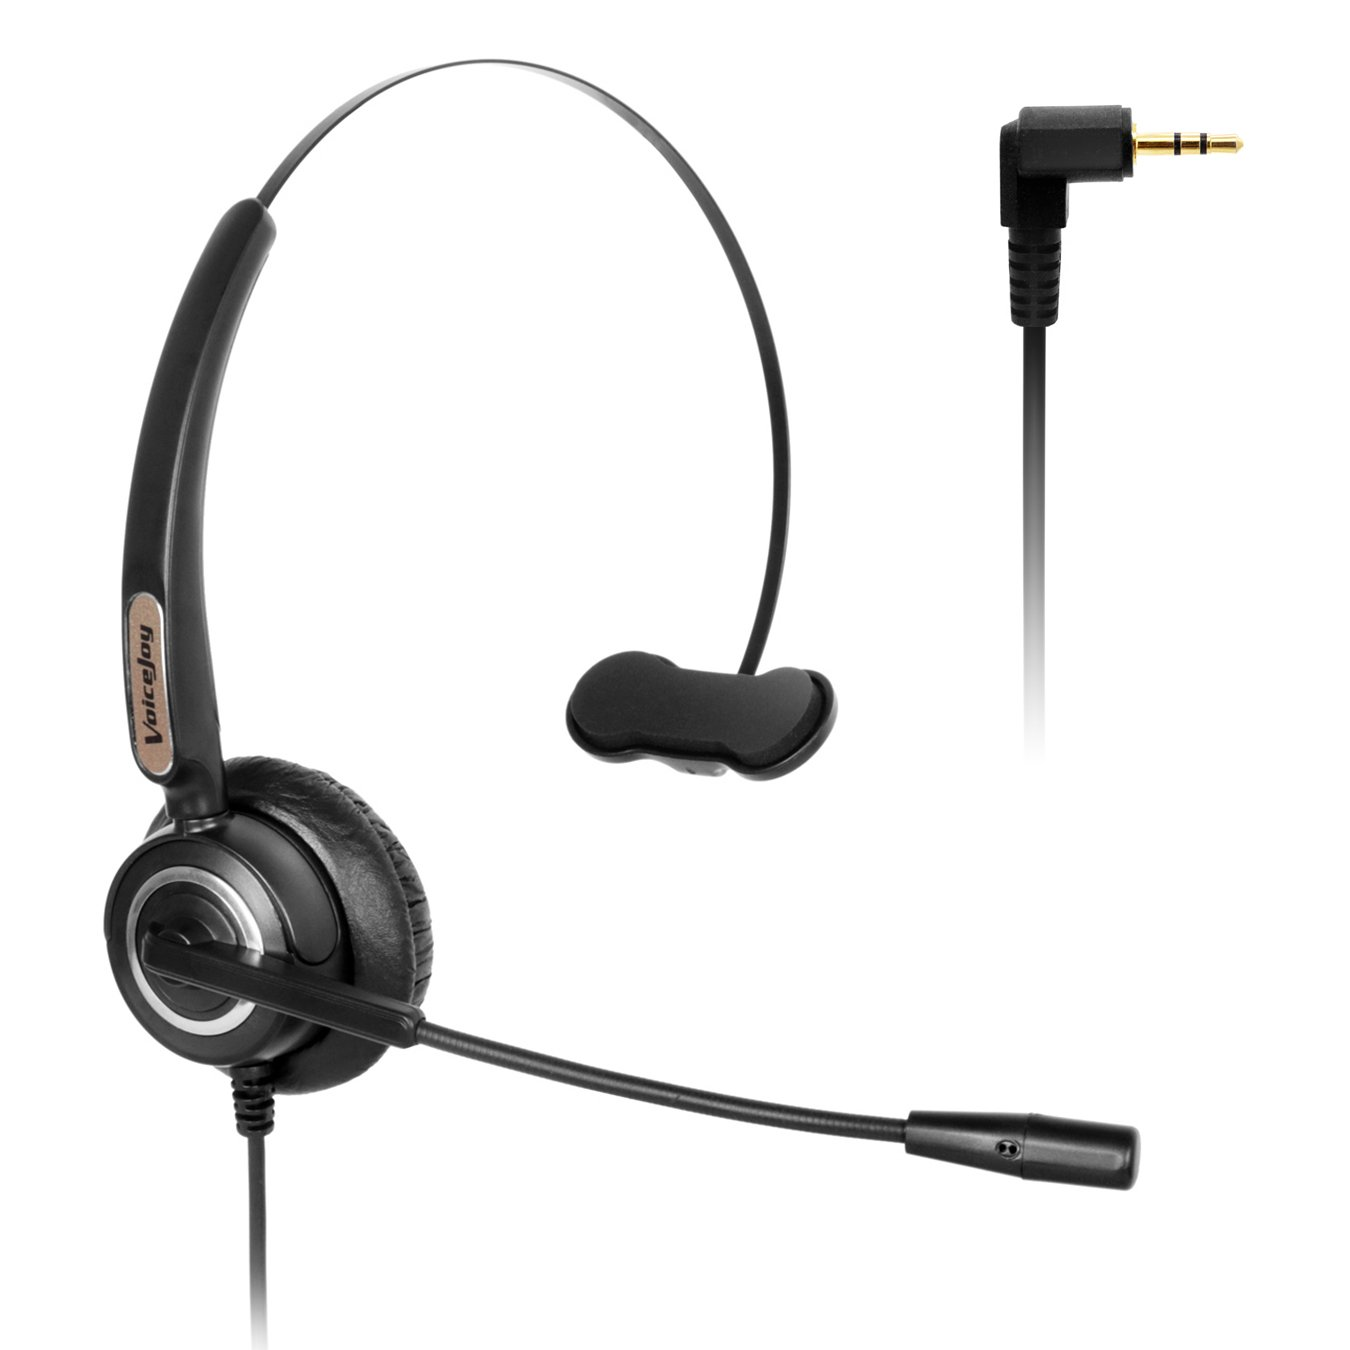 Telephone Headset with Microphone Wired Phone Headset for Panasonic Cordless Phones with 2.5mm Jack Plus Many Other DECT Phones Polycom Grandstream Cisco Linksys Spa Zultys Gigaset Ip Phones